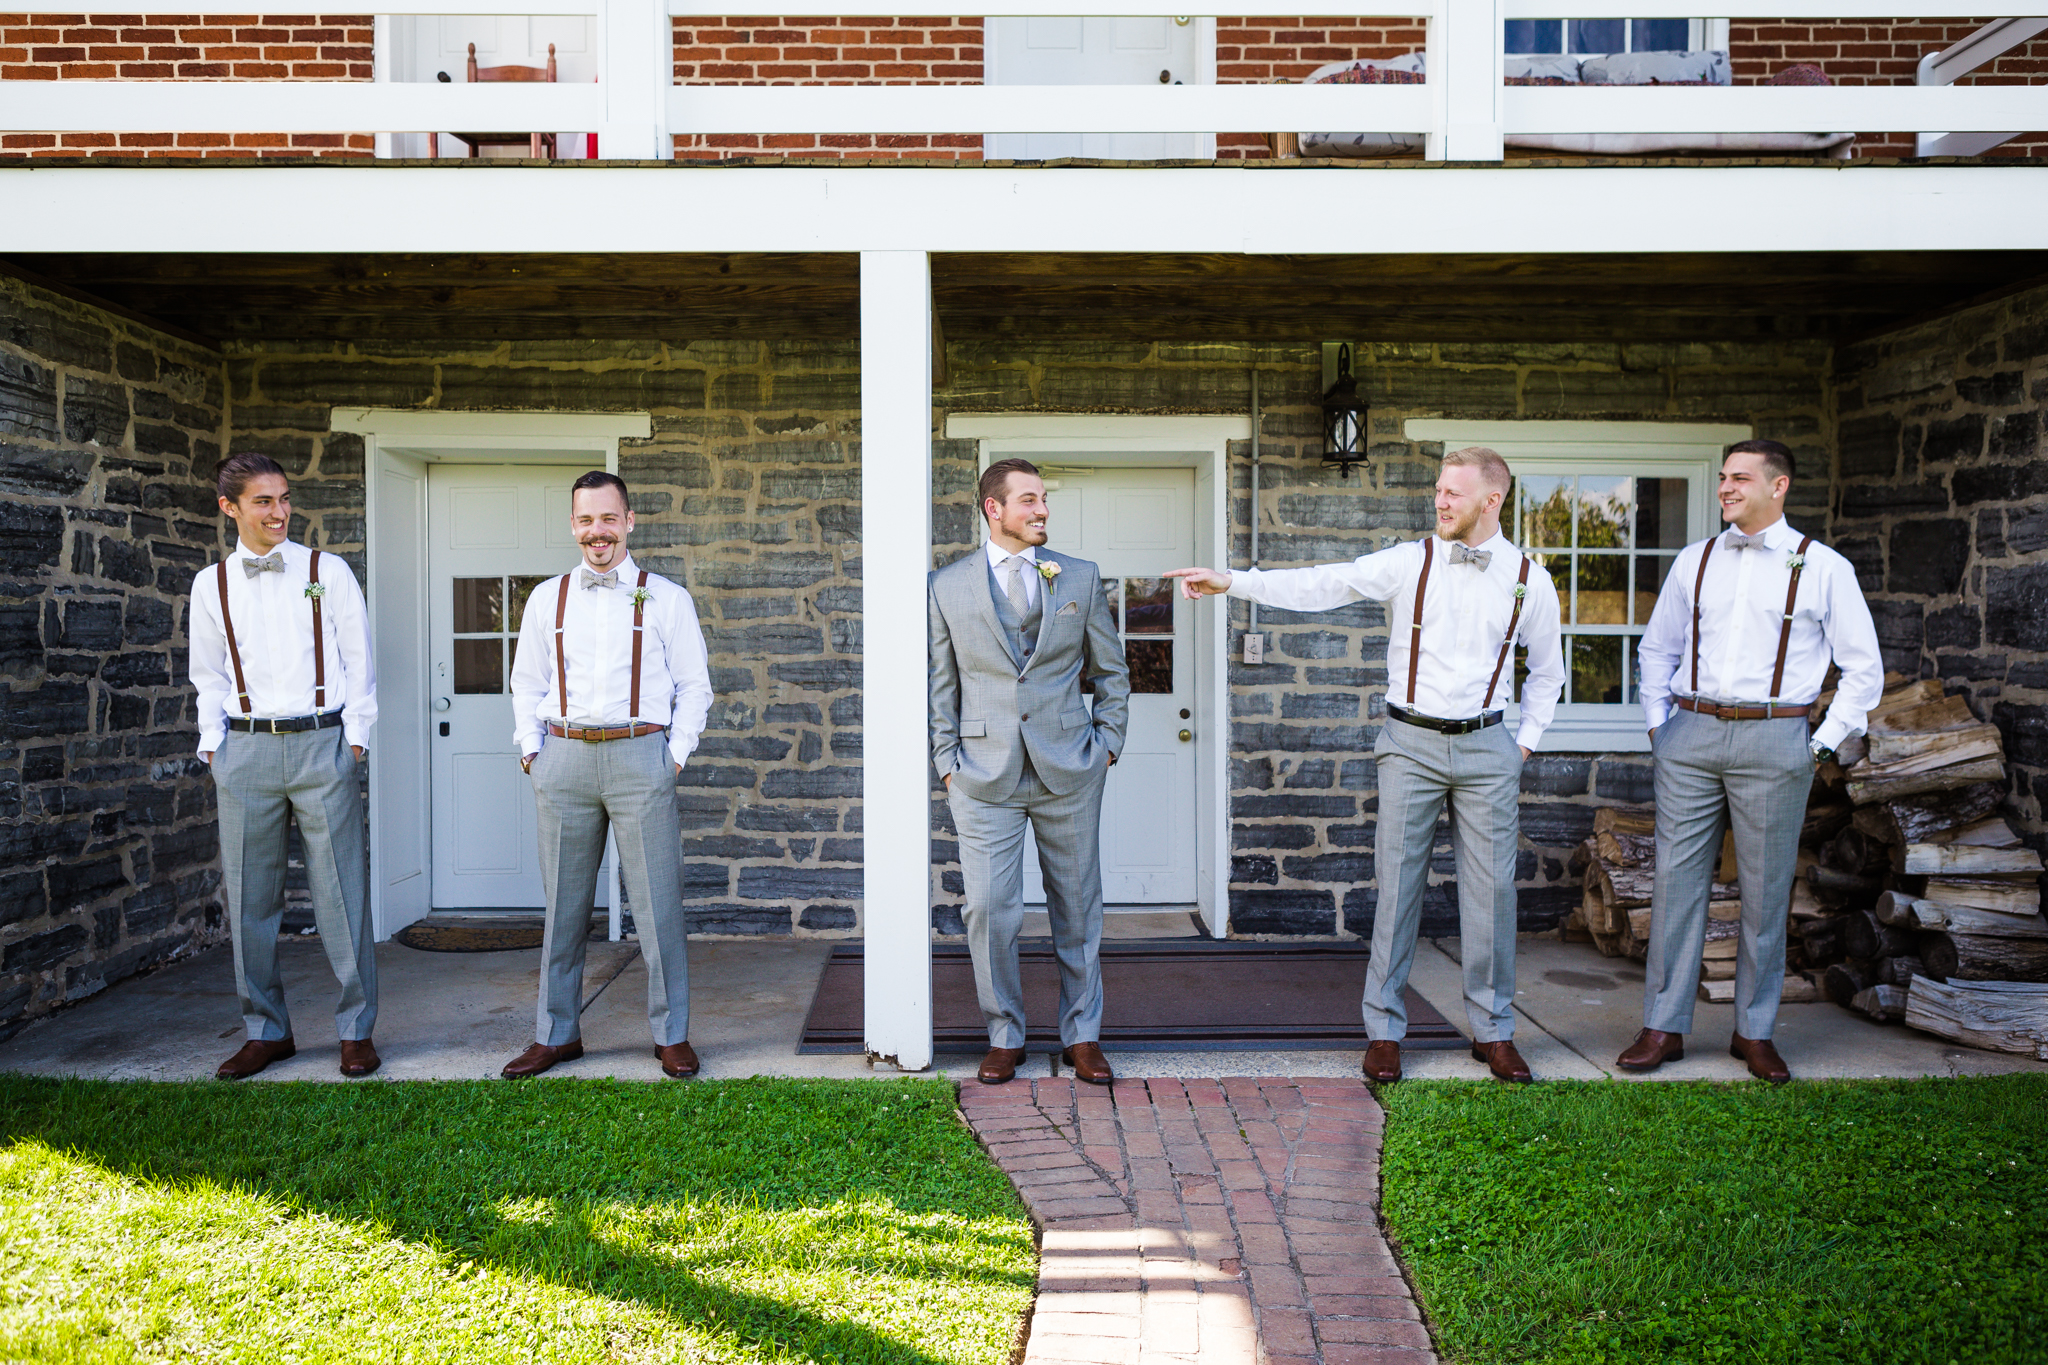 dulany's overlook wedding